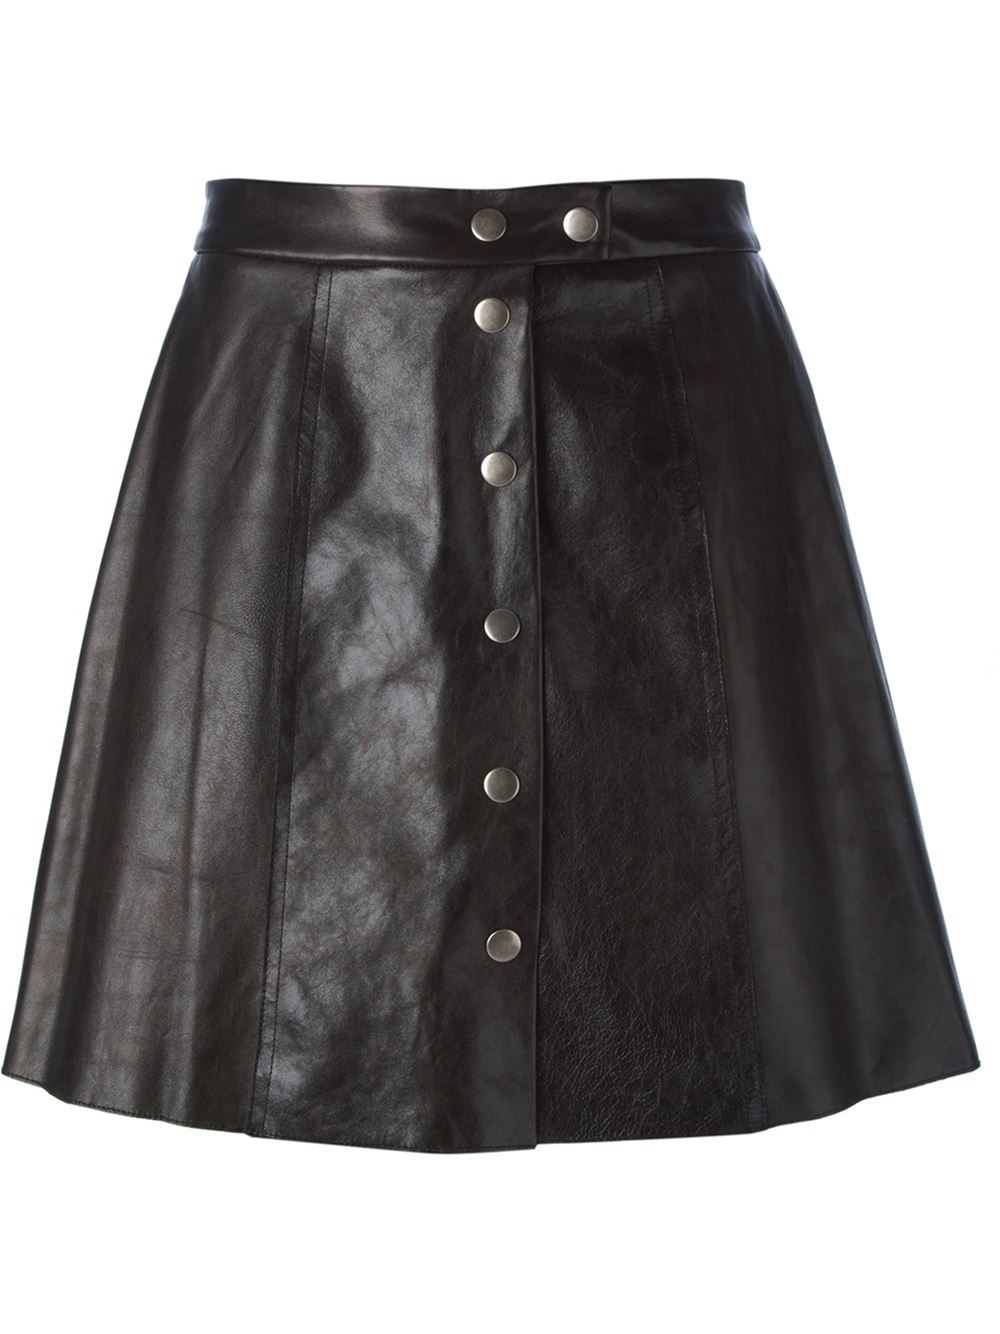 sea buttoned a line skirt in black lyst